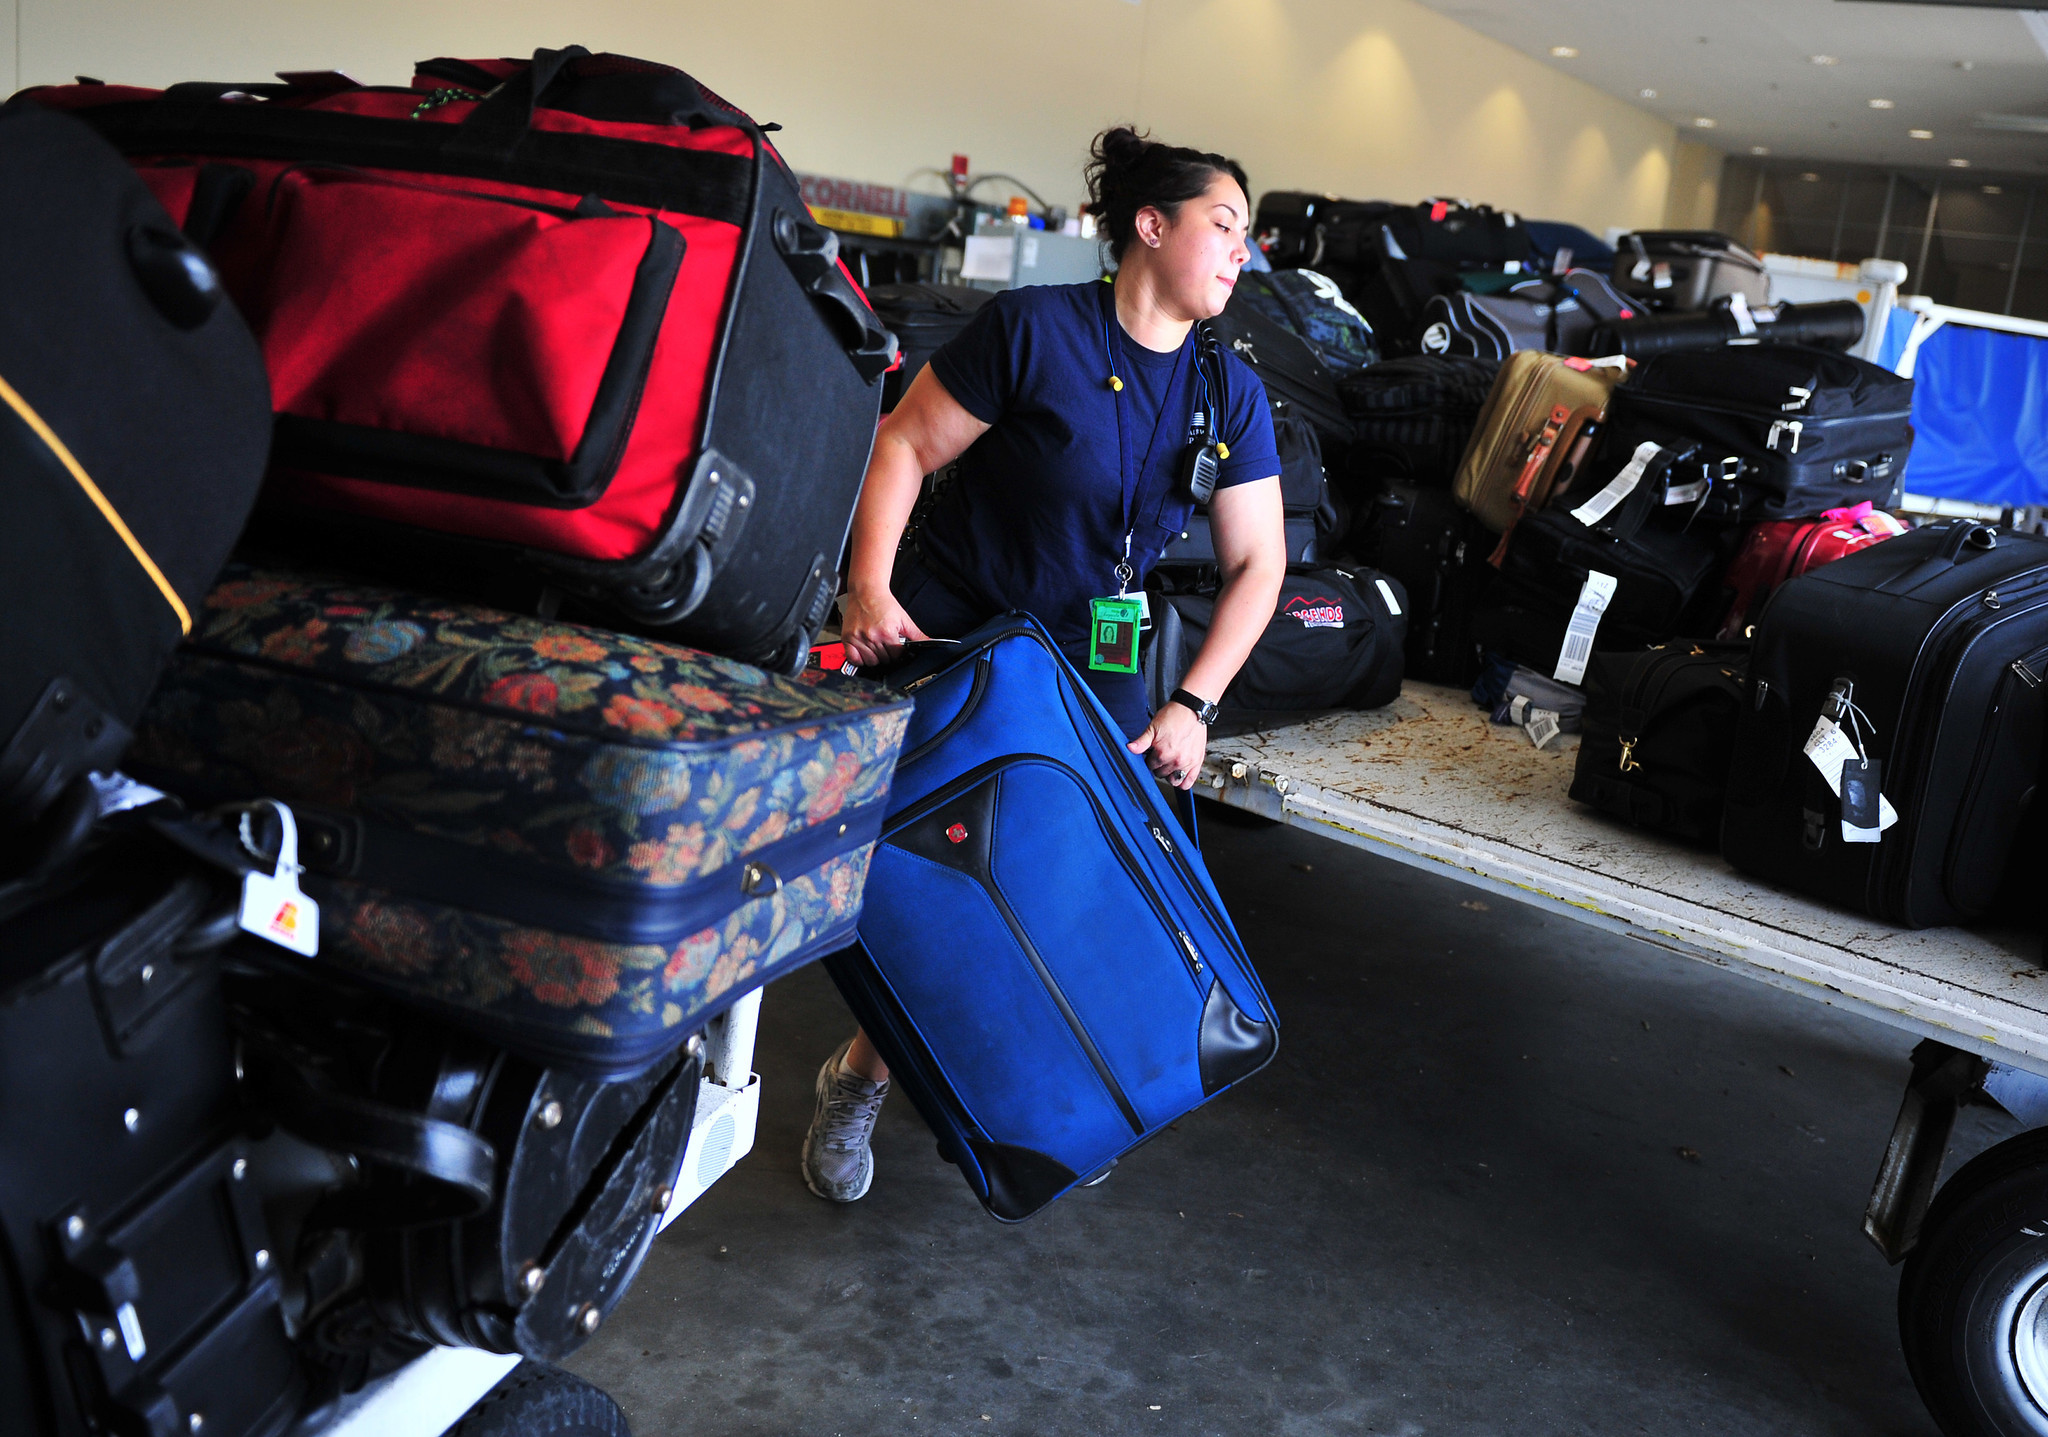 United Check Bag Fee Airlines Make Less On Bag Fees While Promoting Credit